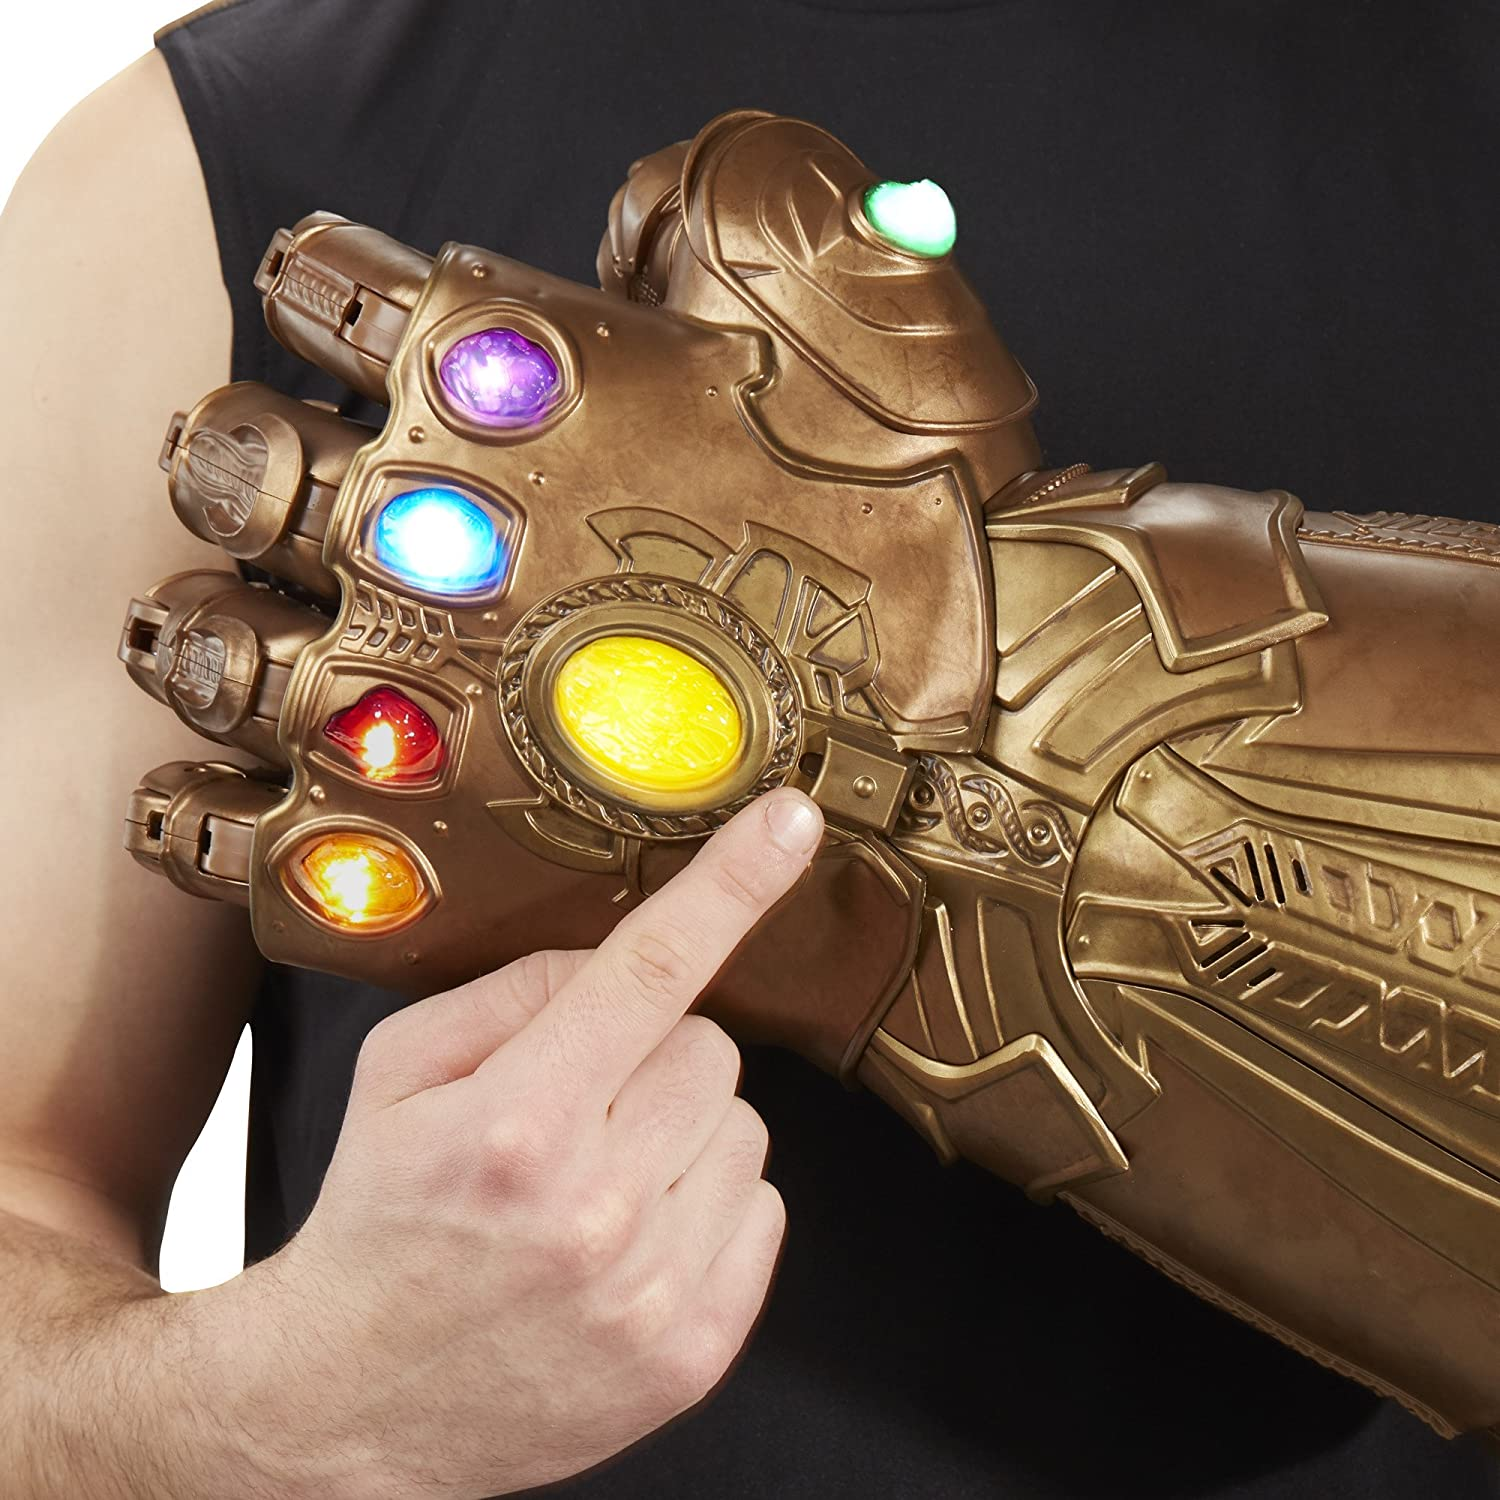 Thanos Infinity Gauntlet, Avengers, Infinity War, Marvel Universe, MCU, Iron Man, Thor, Thanos, cosplay gear, action figures, Marvel items, Hulk, Spider Man, Captain America, Black Widow, Doctor Strange,